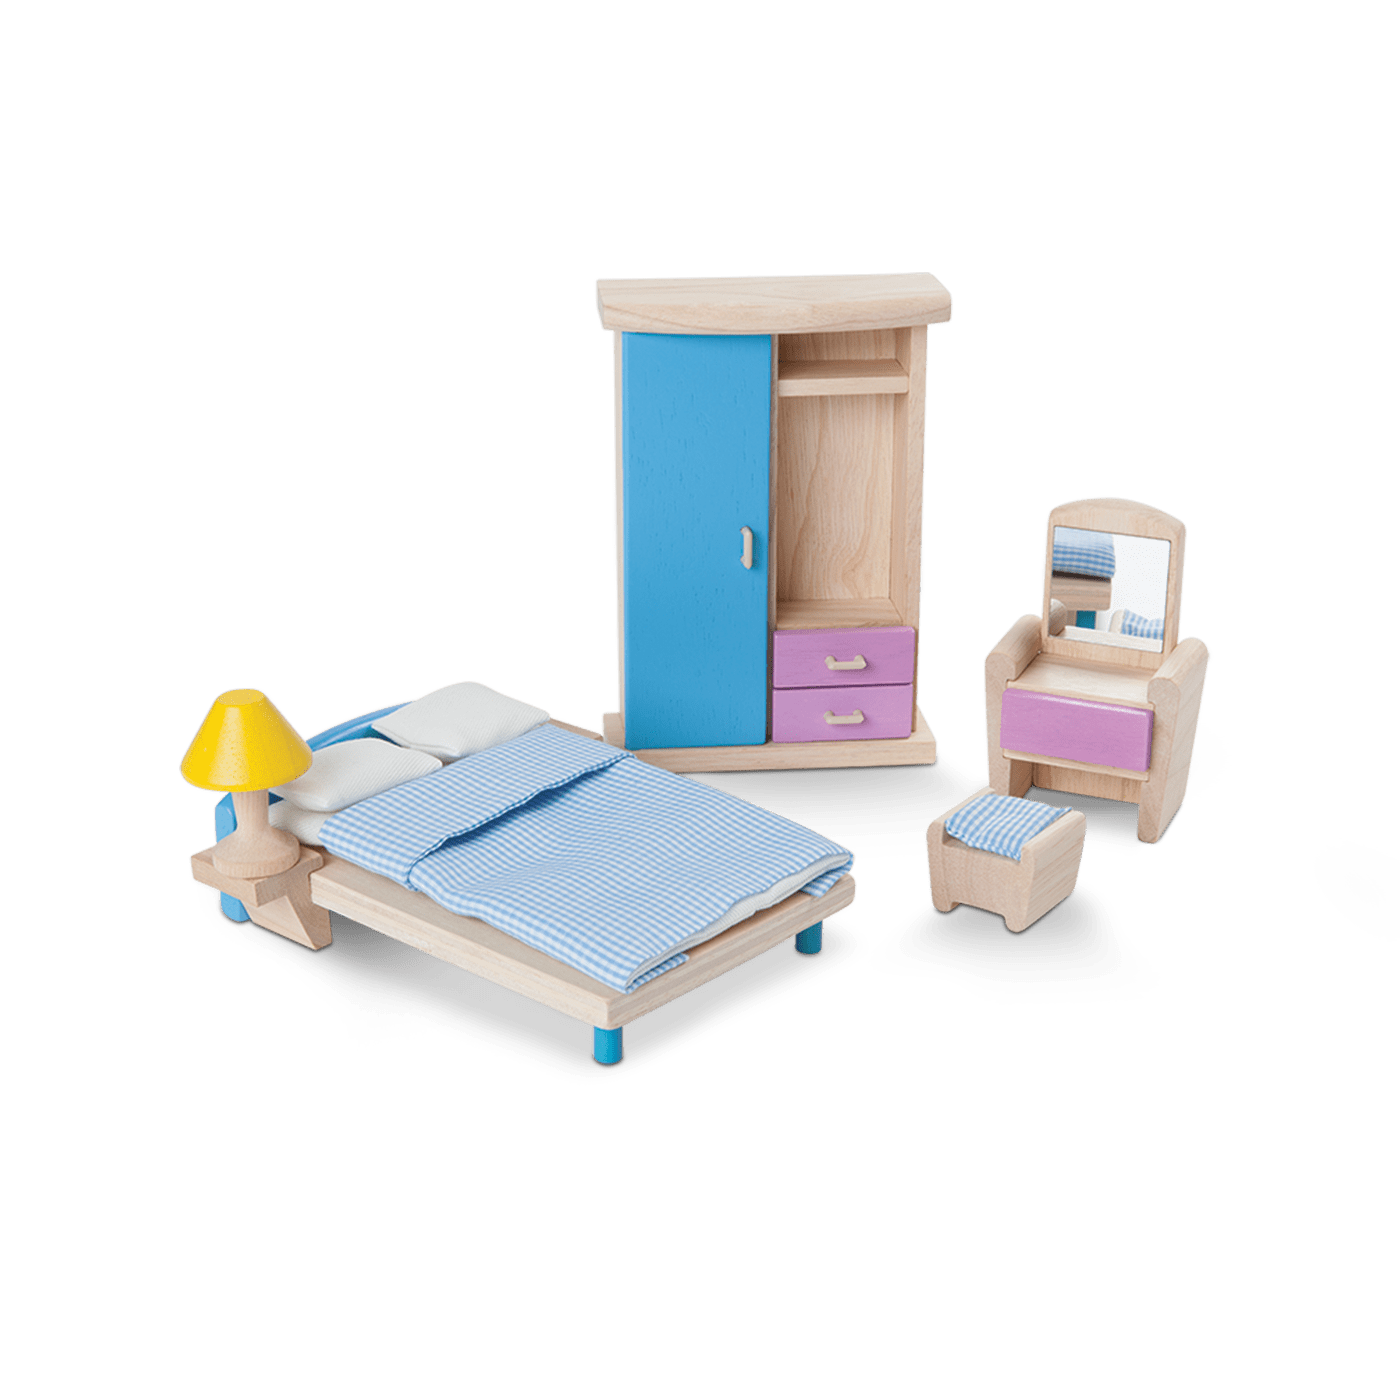 7309_PlanToys_BEDROOM_Pretend_Play_Imagination_Coordination_Language_and_Communications_Social_Fine_Motor_3yrs_Wooden_toys_Education_toys_Safety_Toys_Non-toxic_0.png